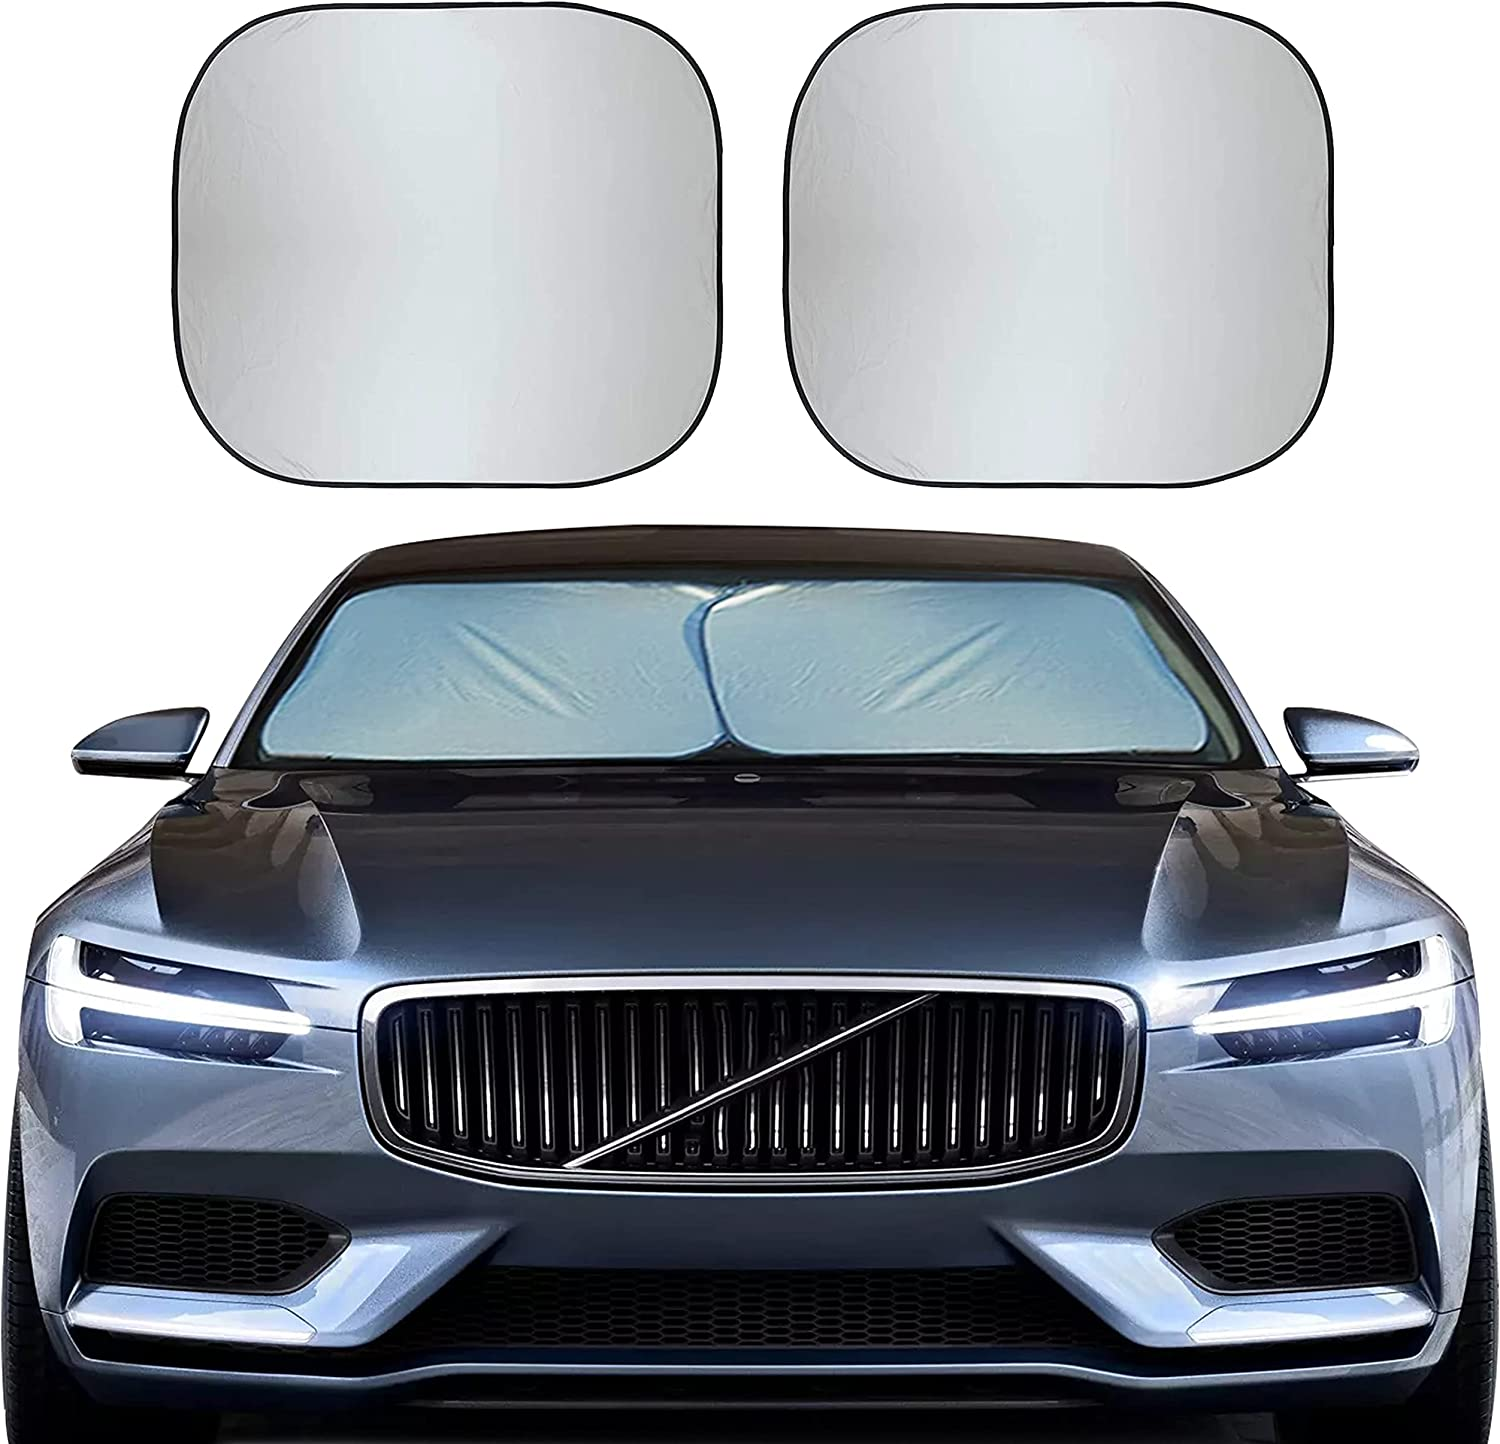 """EcoNour Foldable 2-Piece Sun Shade for Car Windshield   Total Sun Heat and UV Protection with Automotive Interior Sun Protection   Window Sunshade with Complete Interior Protection (Medium 28""""x31"""")"""